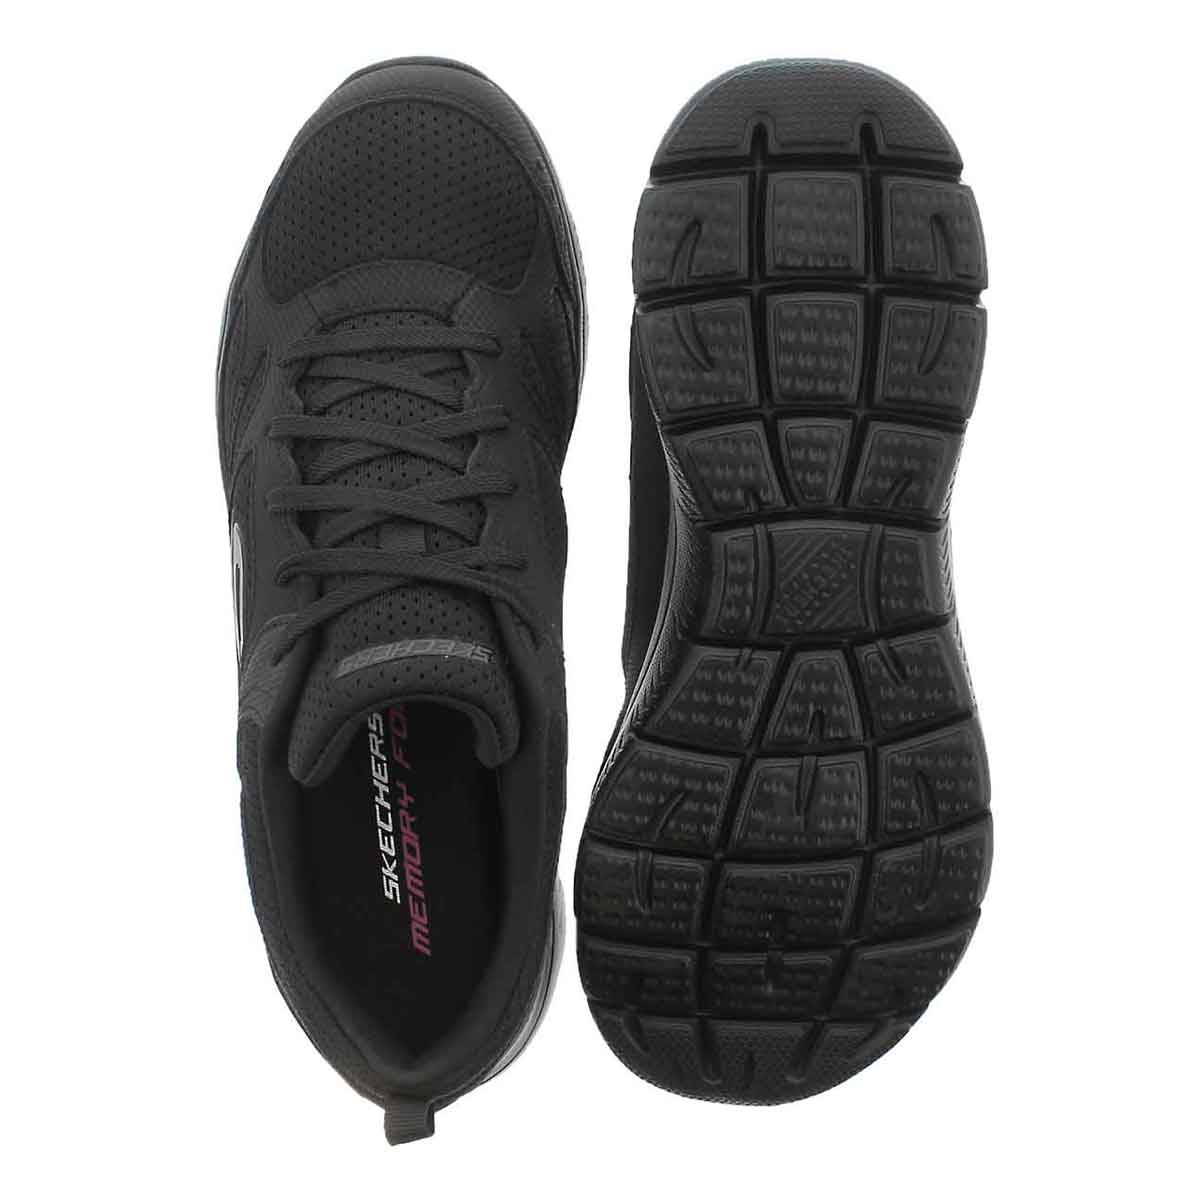 Lds Summits Suited blk snkr